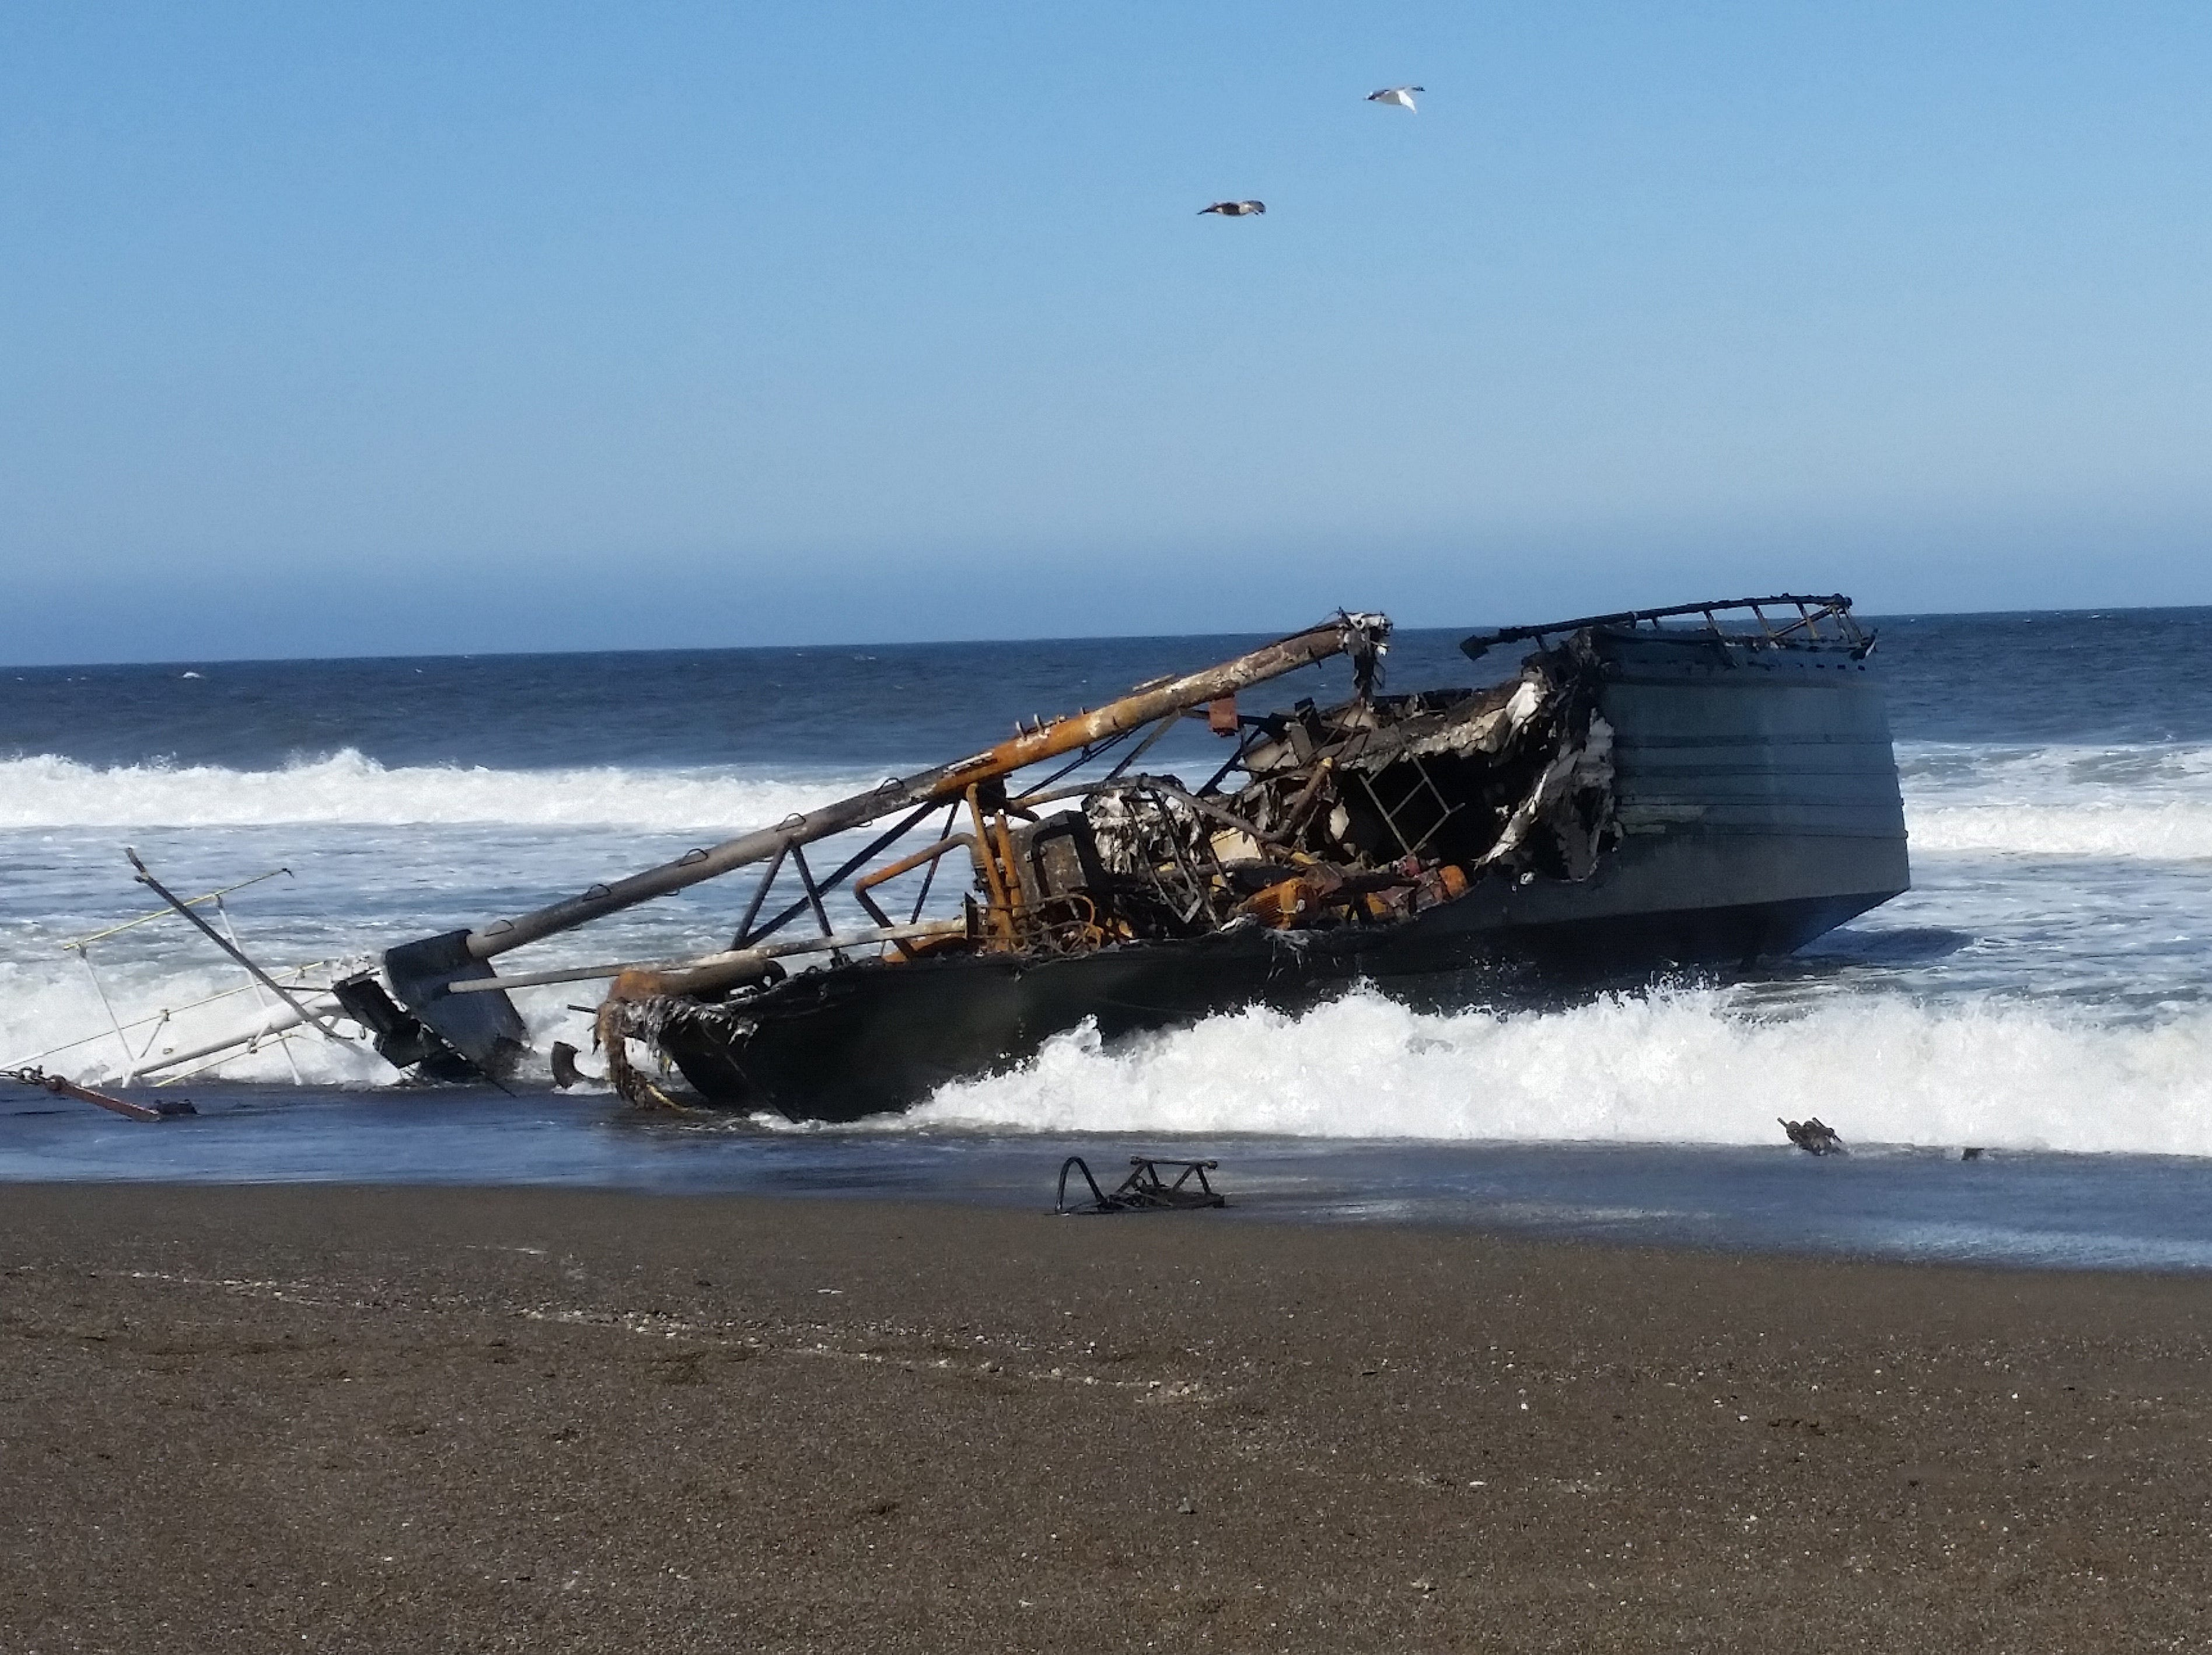 The wreckage of the 64-foot commercial fishing vessel Ann Kathleen sits on a beach near Bandon, May 5, 2019.